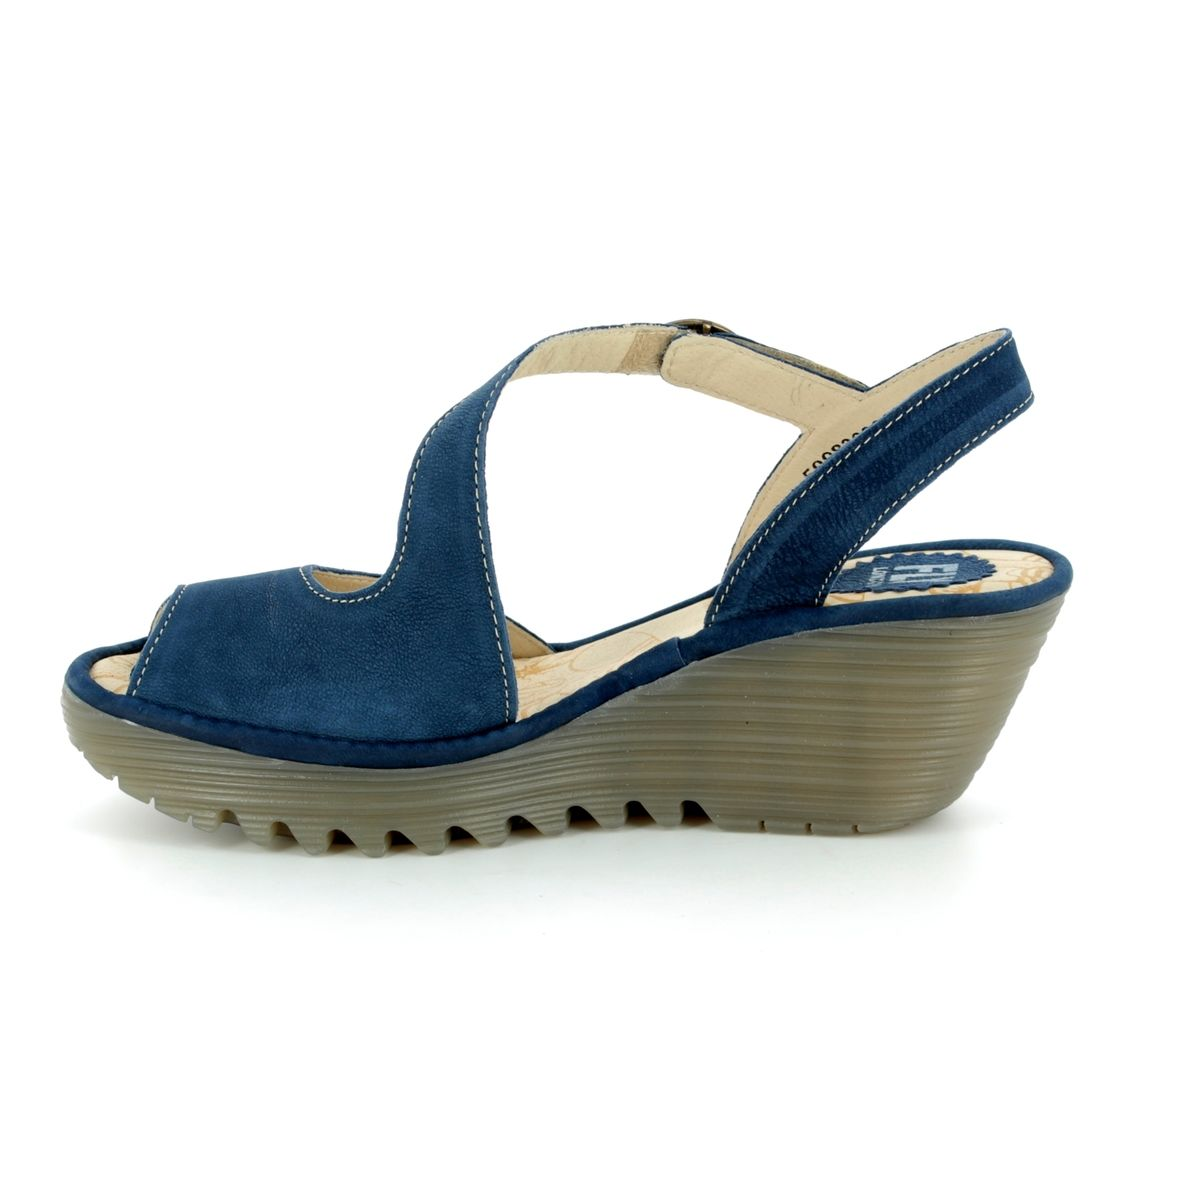 P500836 Sandals London Yamp 836 Blue Fly Wedge 001 A54r3qjlcs Nwn0Ovm8